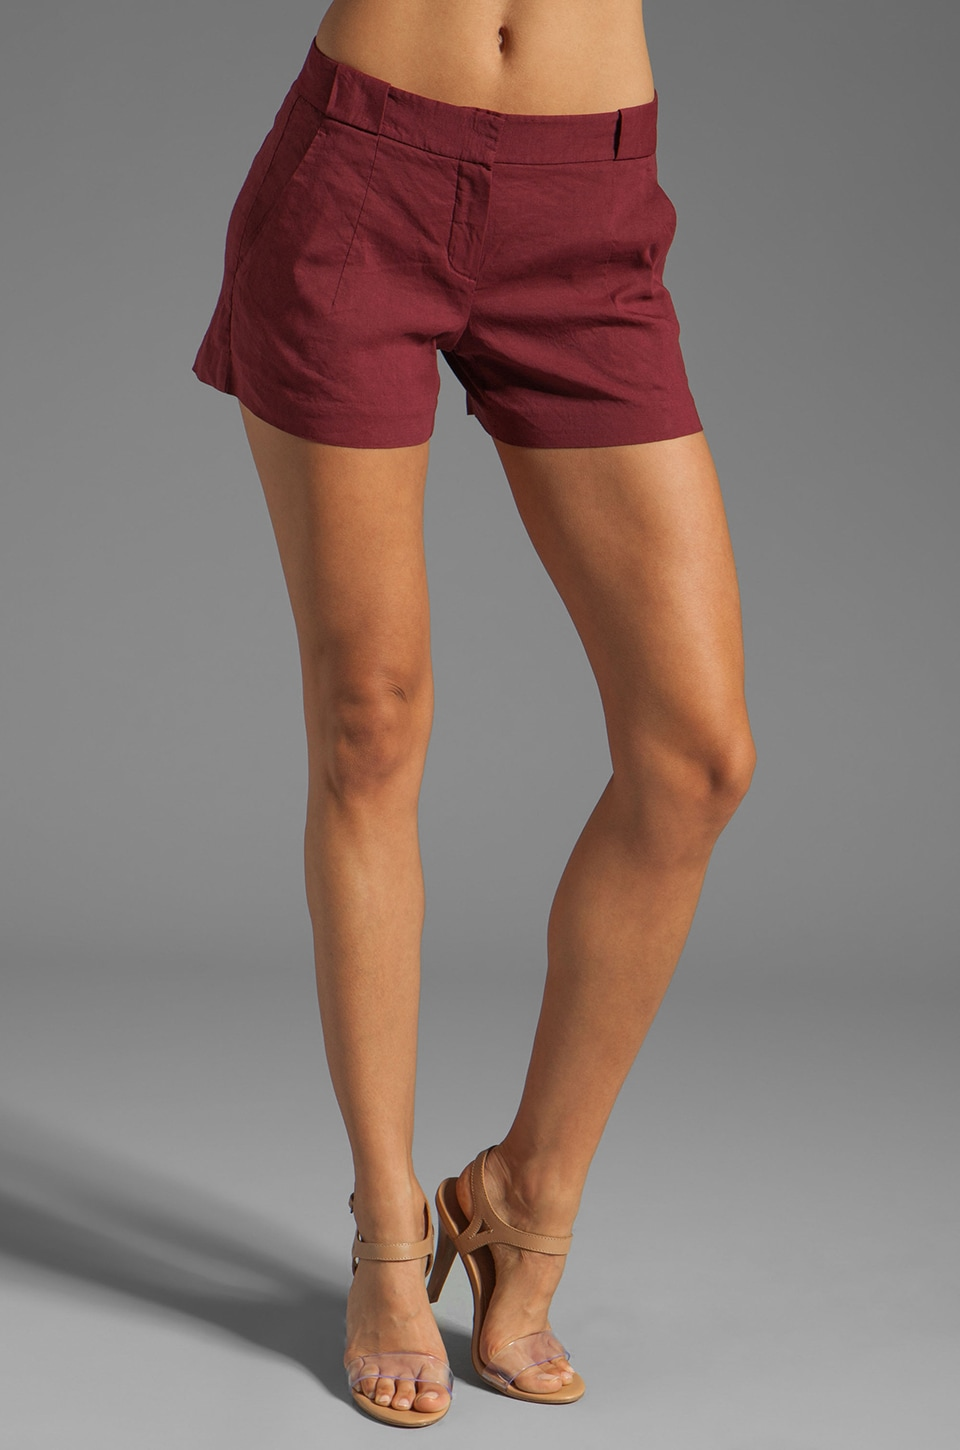 Theory Crunch Roushy L Linen Shorts in Mahogany Red